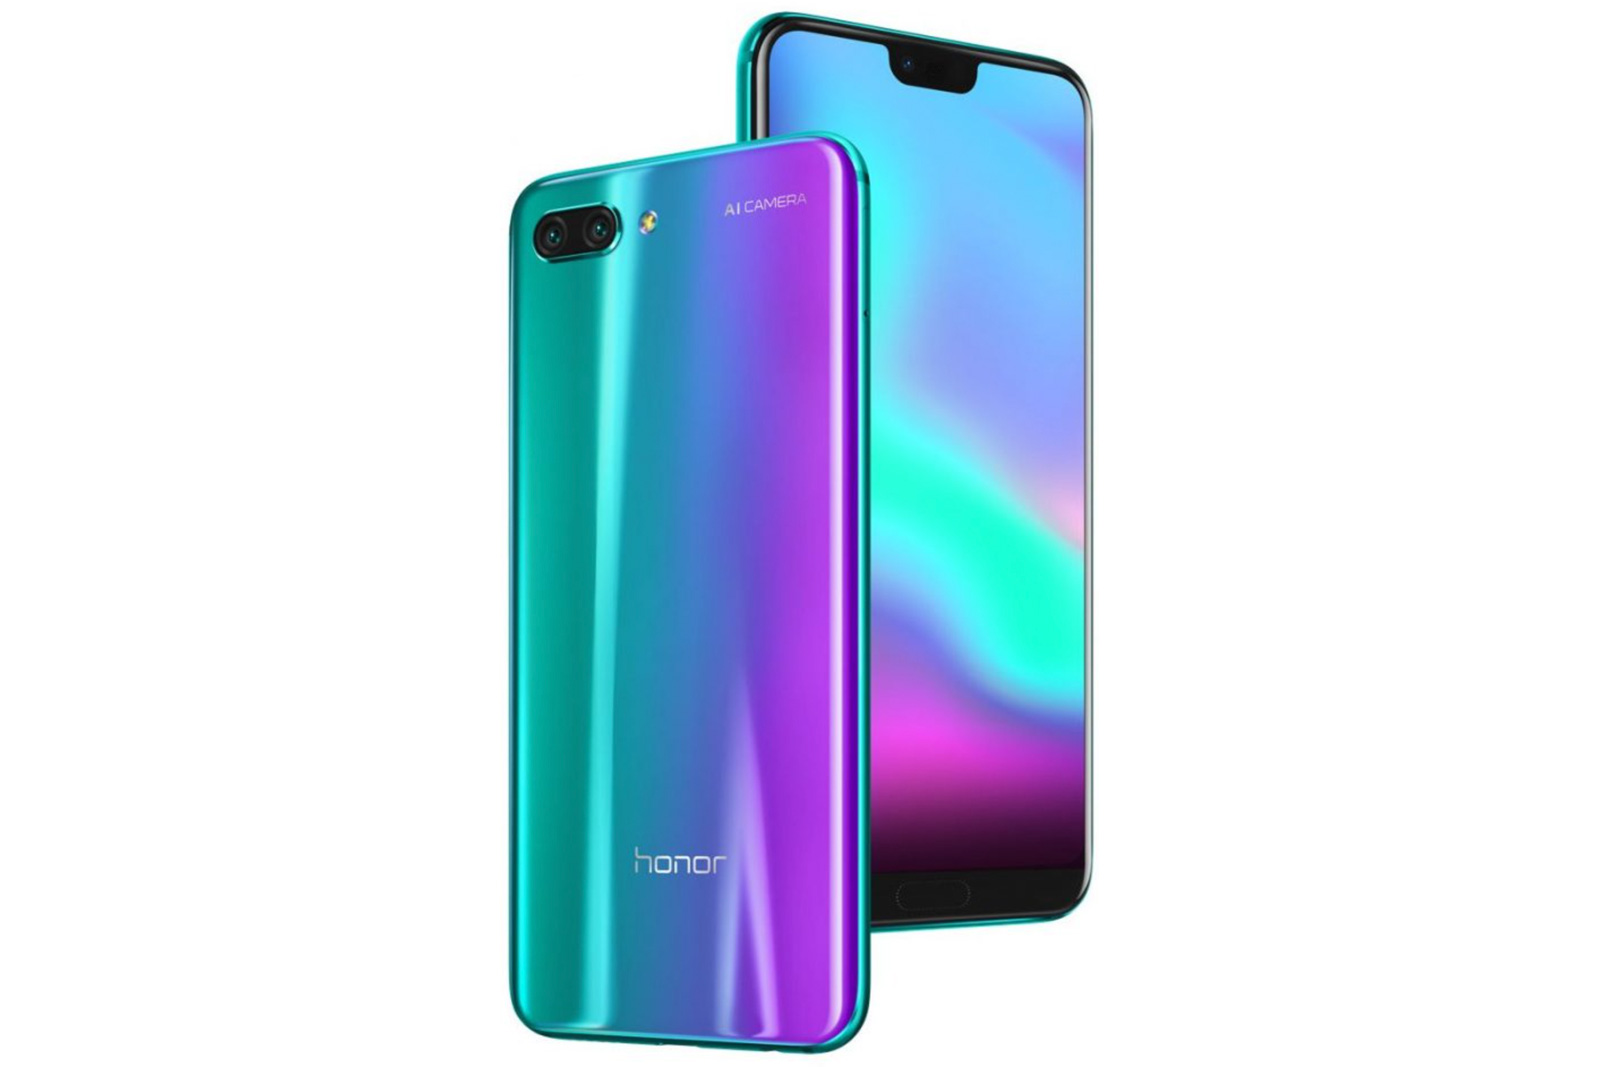 the honor 10 is as funky looking as the huawei p20 only